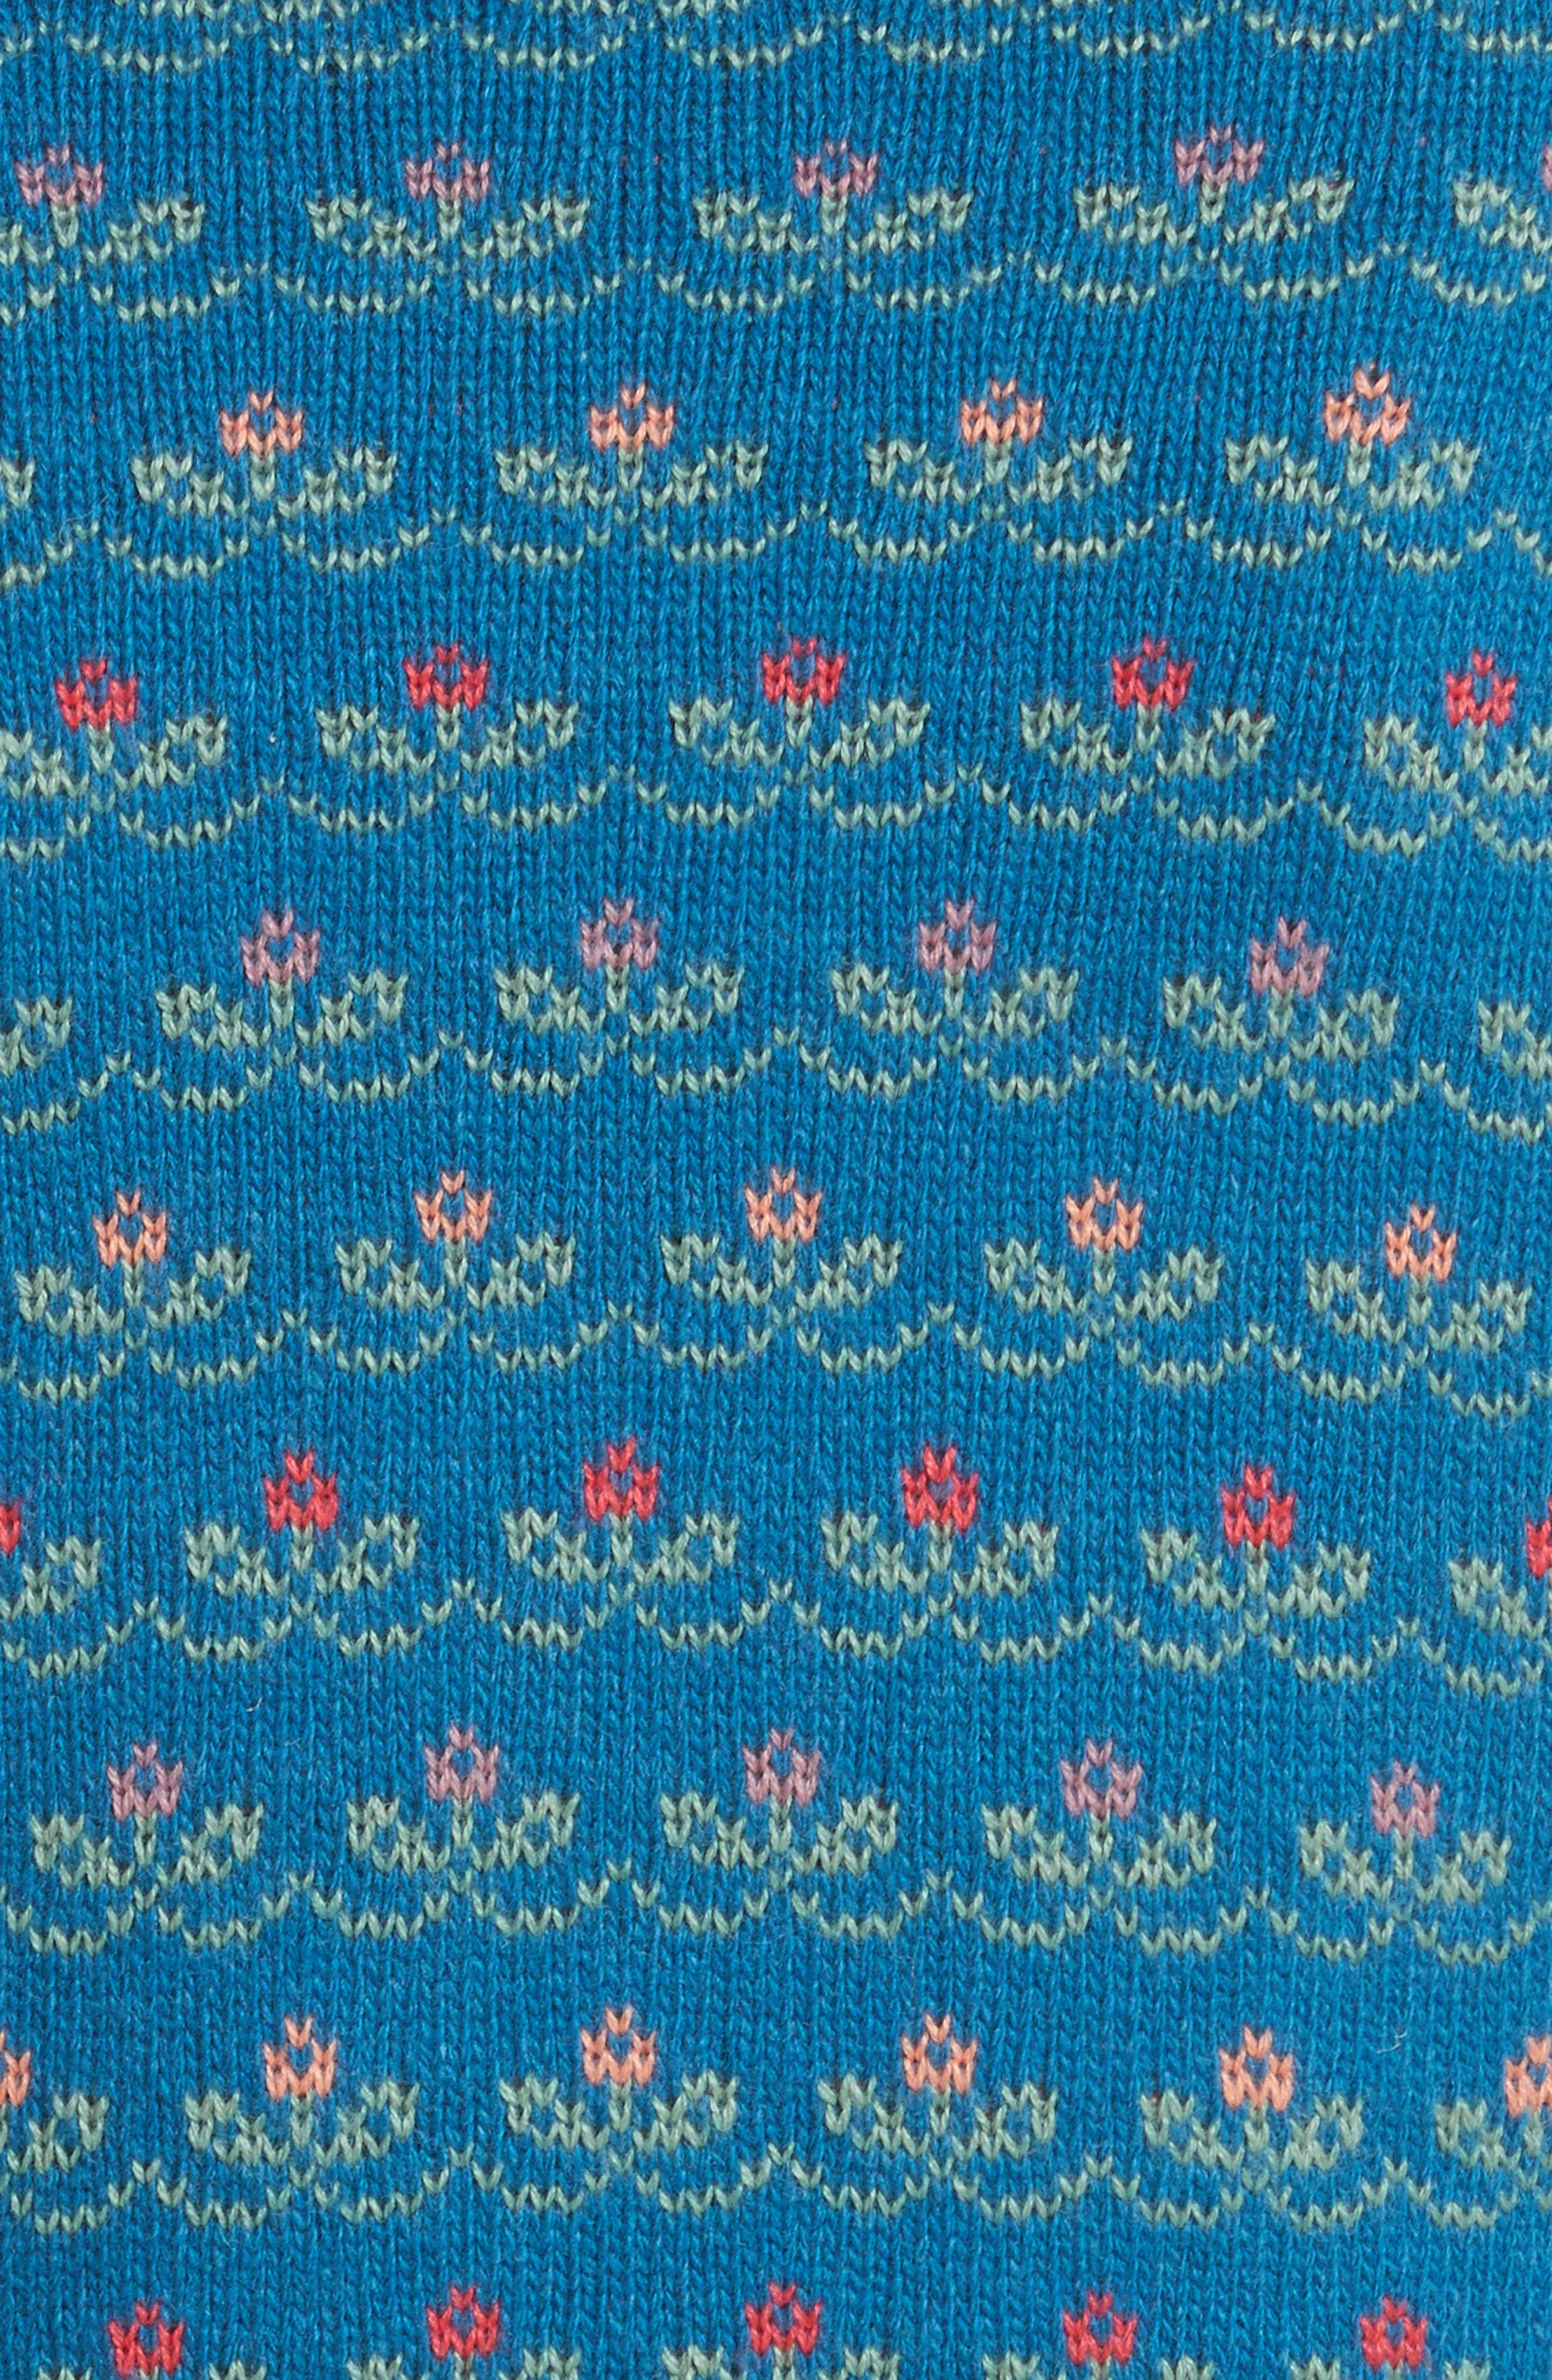 Floral Jacquard Carded Wool Blend Sweater,                             Alternate thumbnail 5, color,                             Lapislazzuli